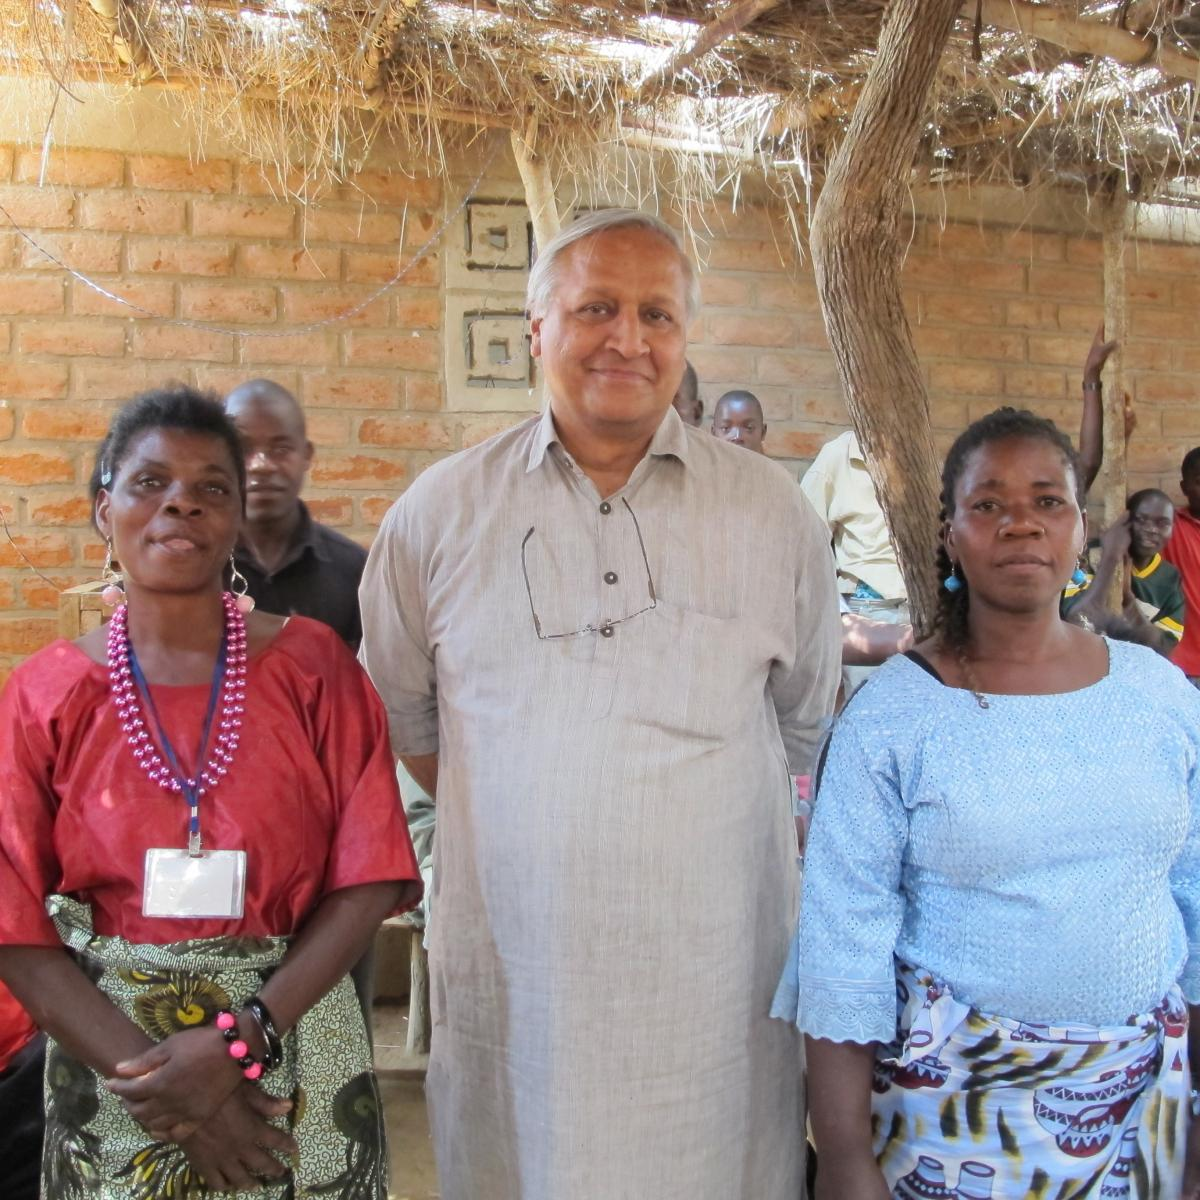 Bunker Roy of Barefoot College stands with two African rural women